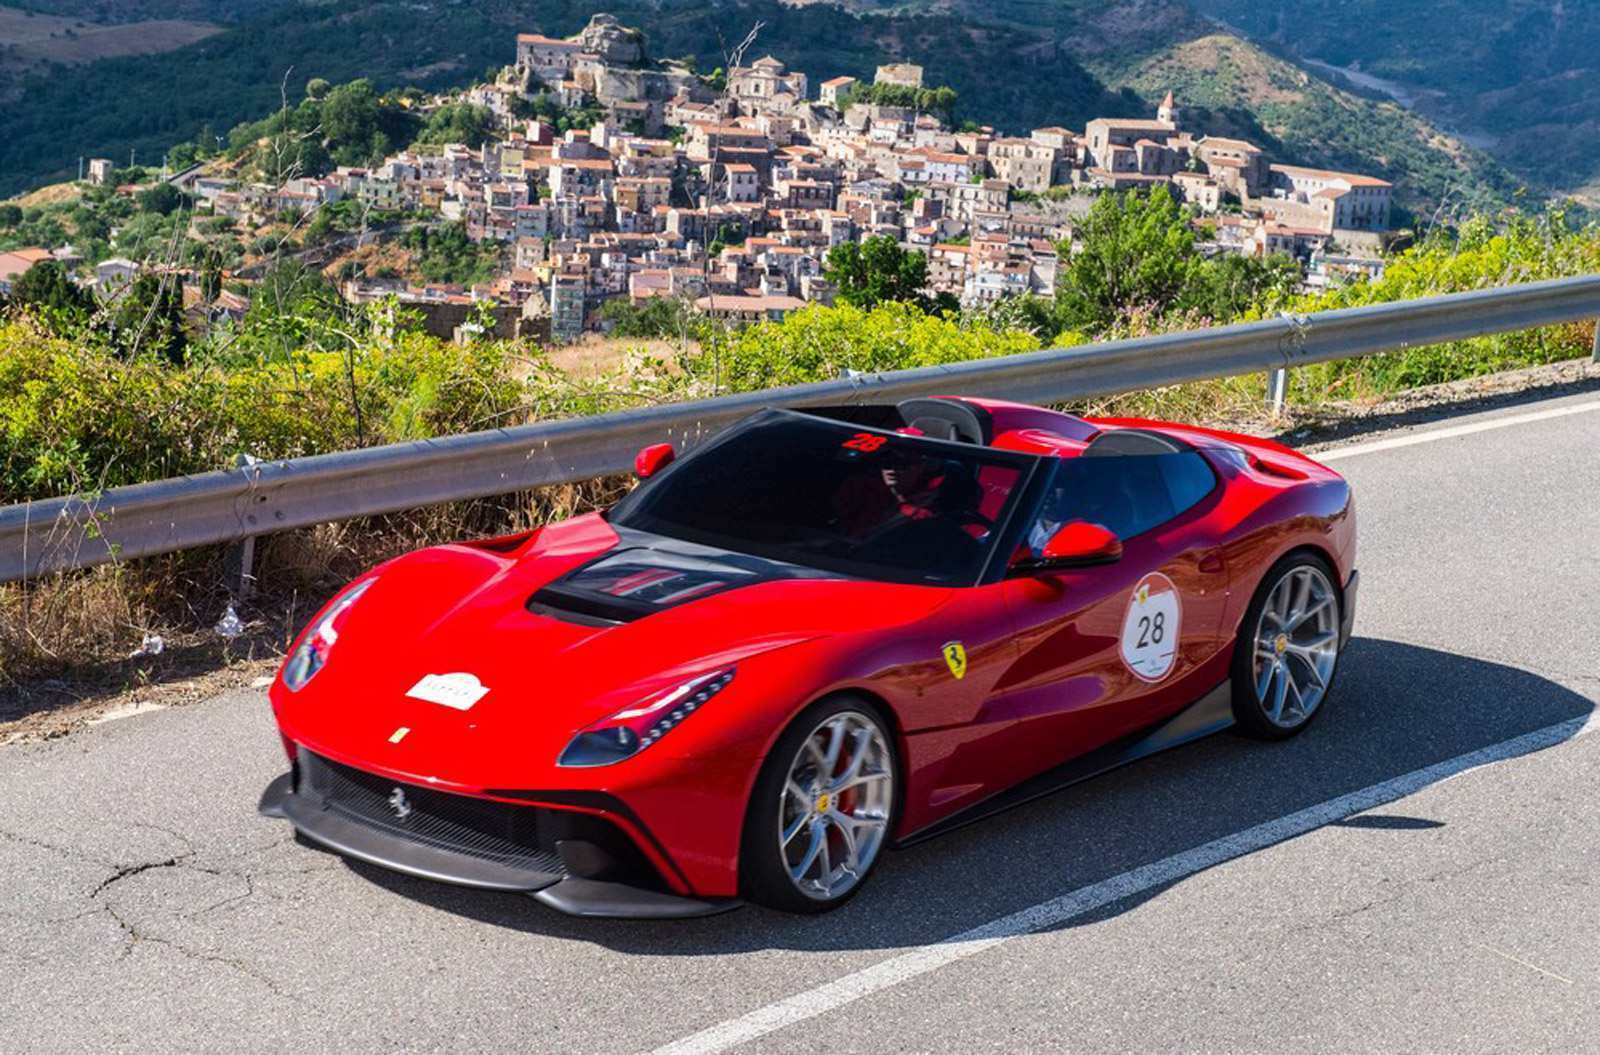 61 The Ferrari F12 2020 Price And Release Date